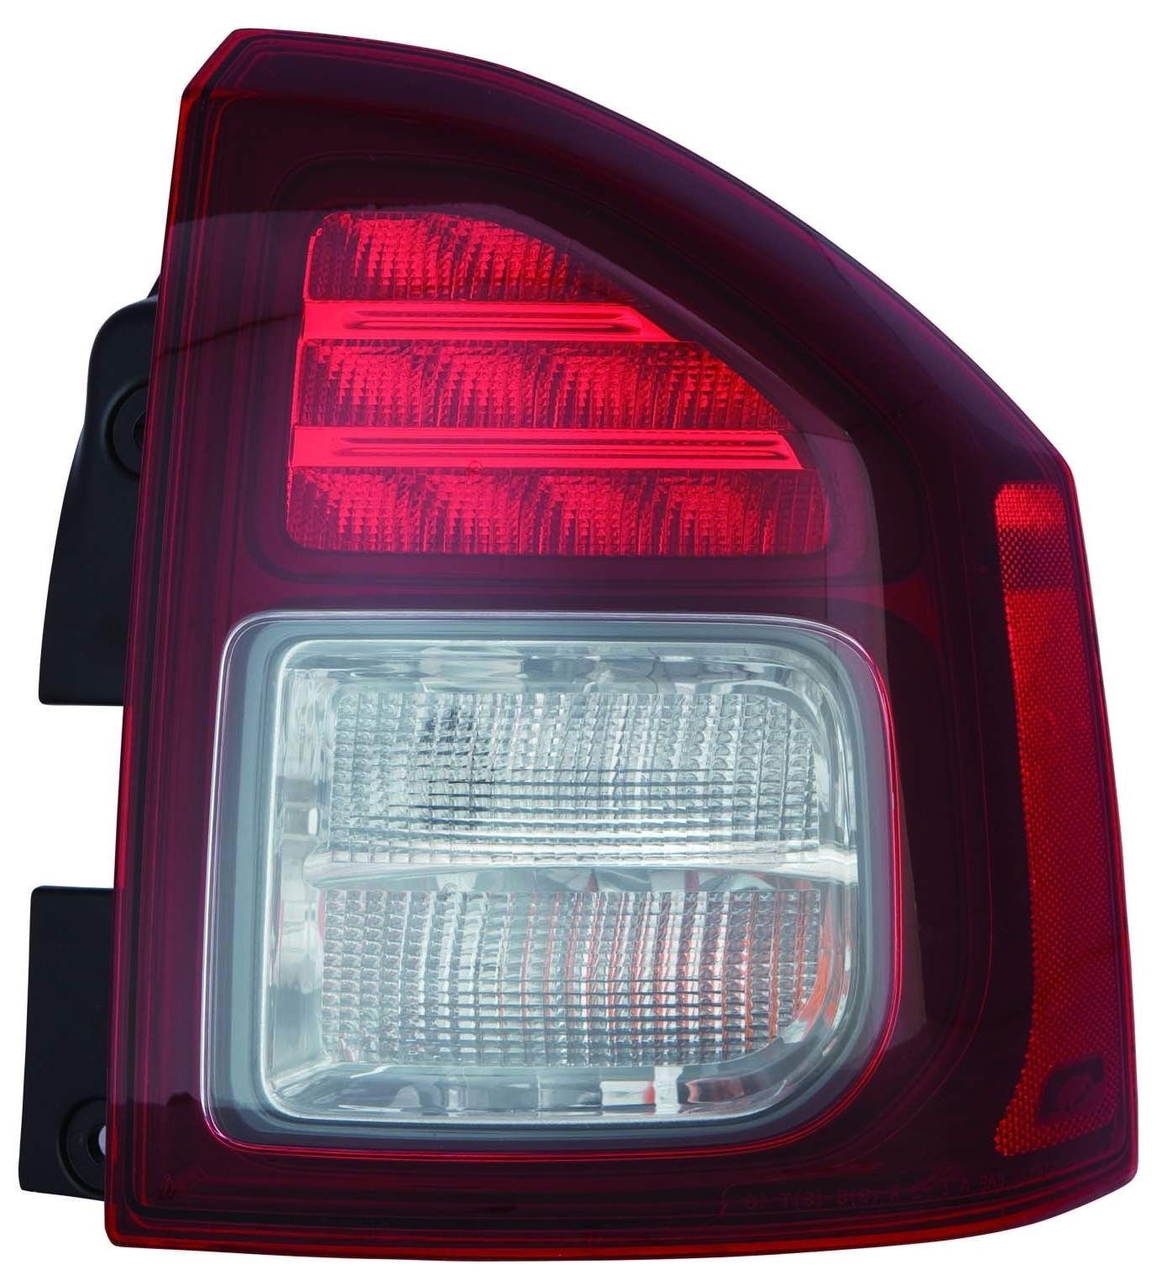 Jeep Compass 2014 2015 tail light right passenger